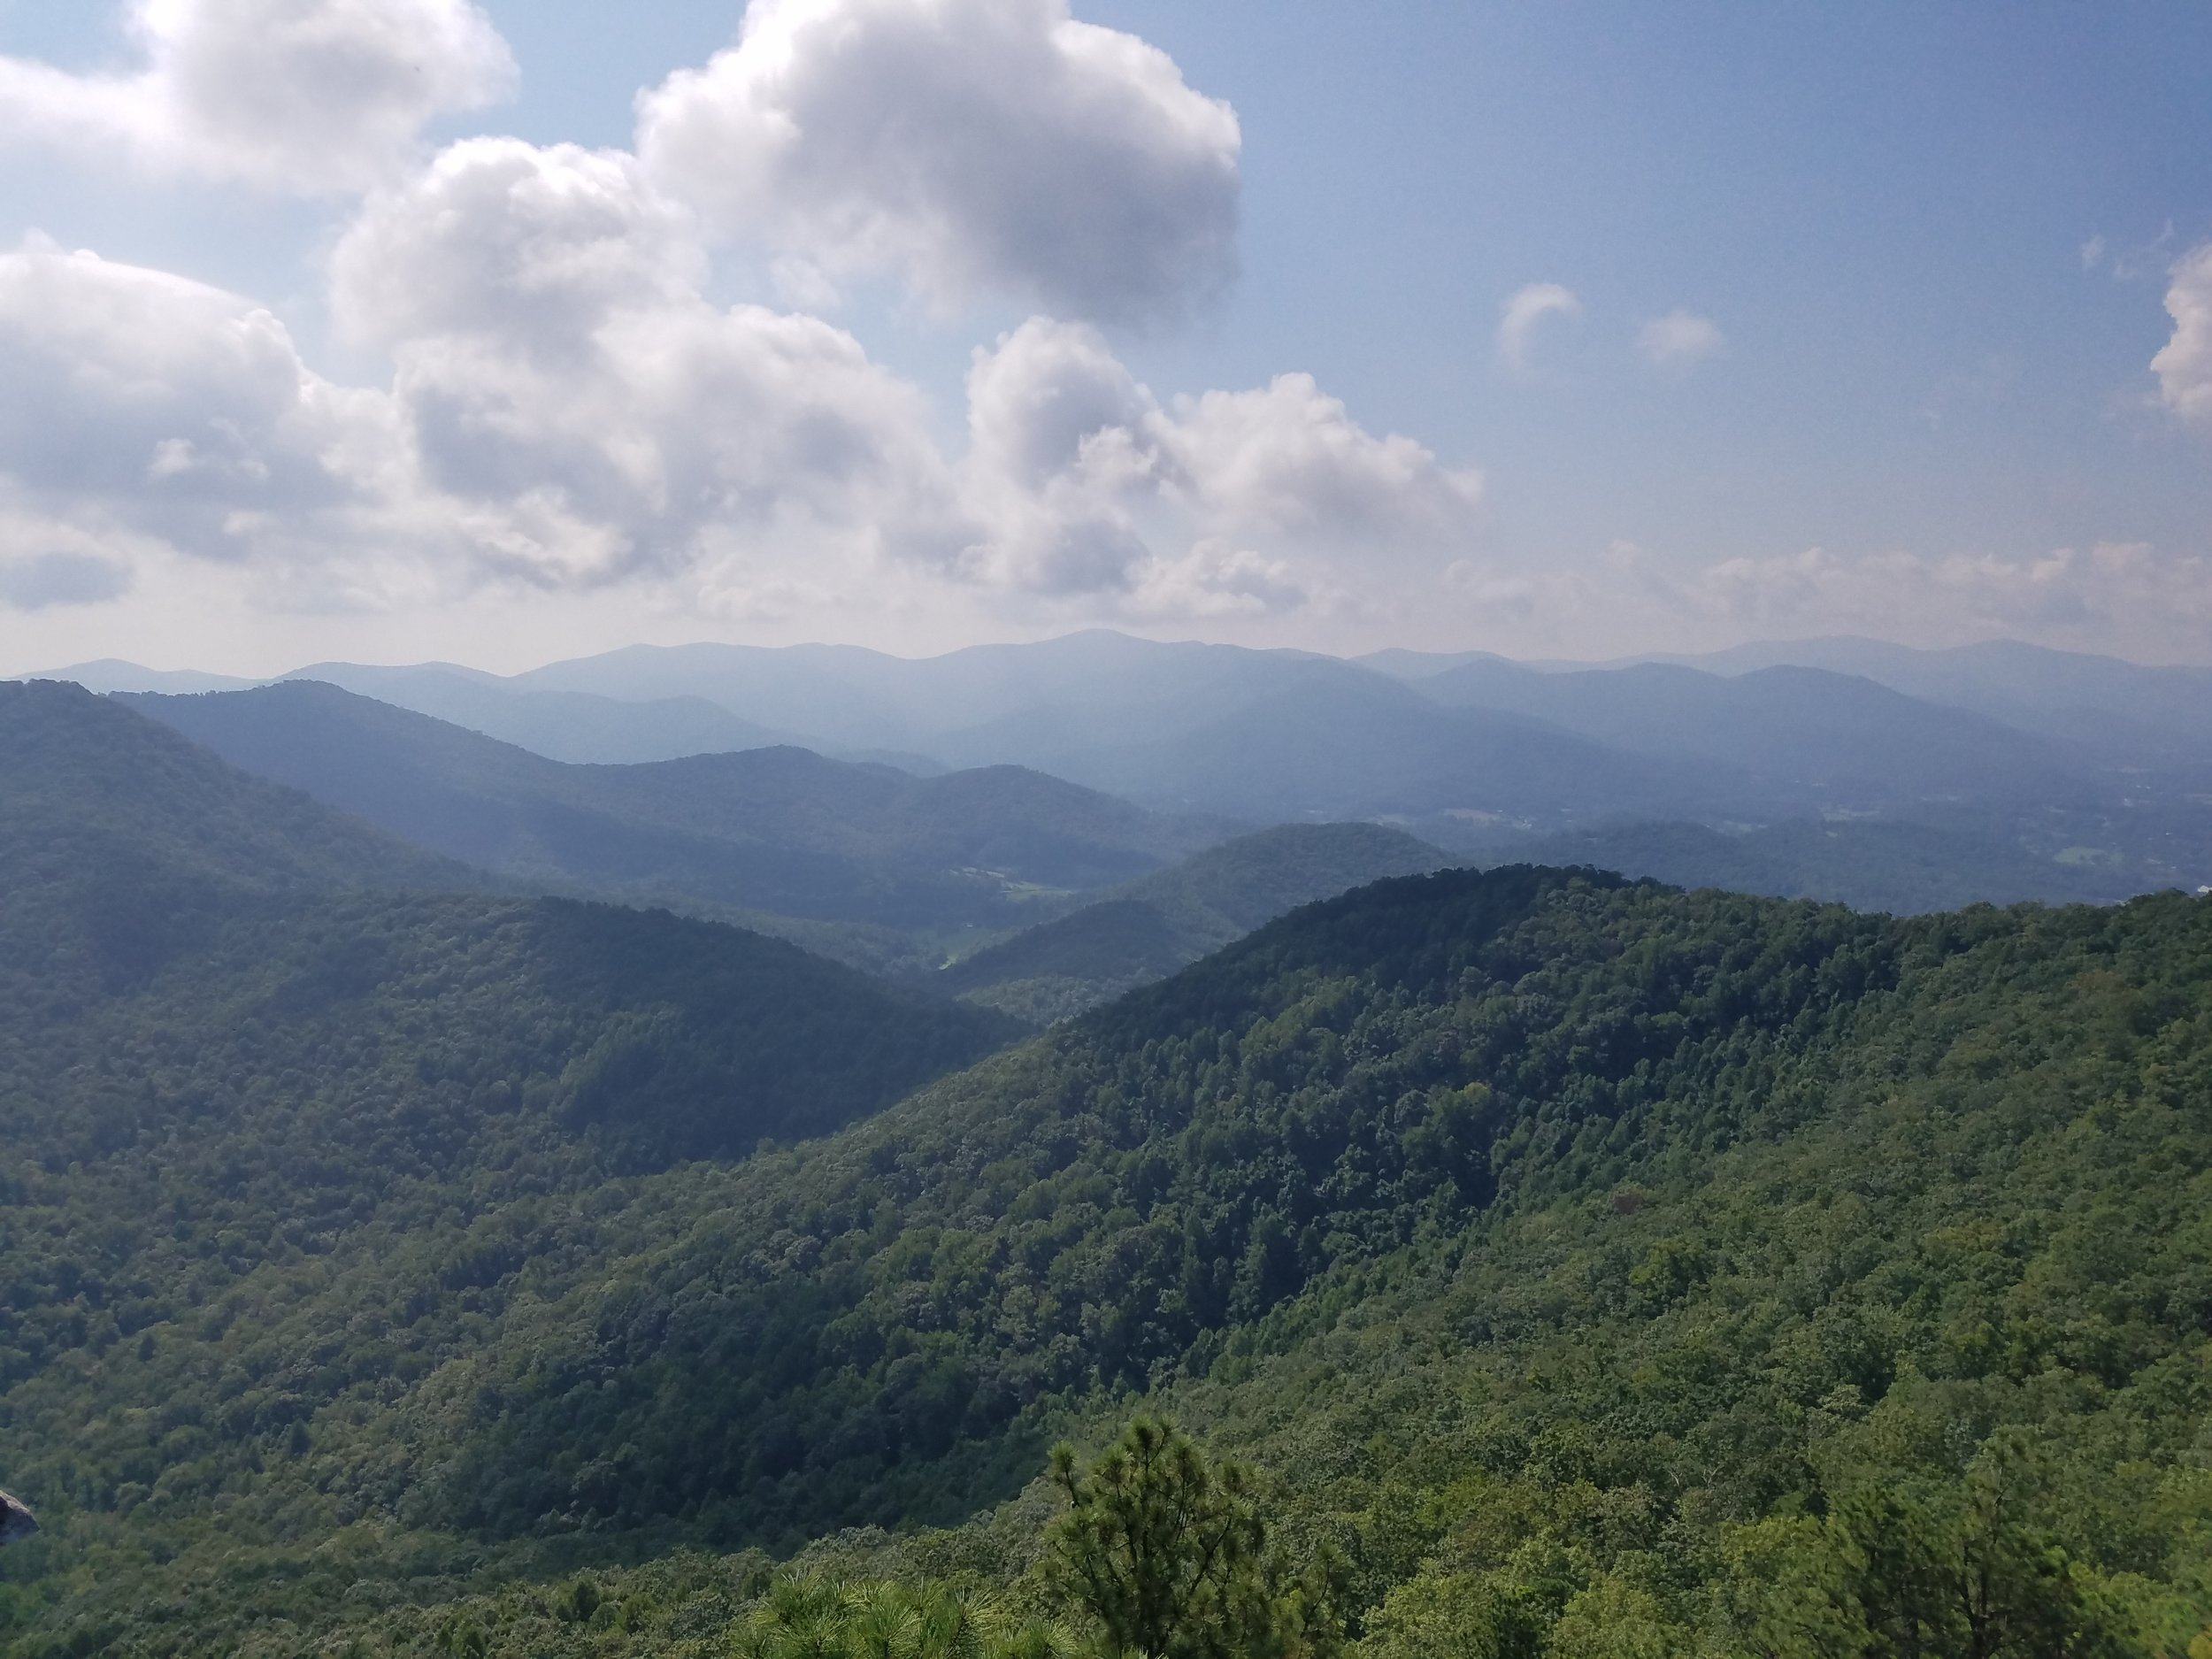 Howlin' at the Moon in Hiawassee, Georgia      The search for the true importance of 2017's Great Eclipse      Read more here.